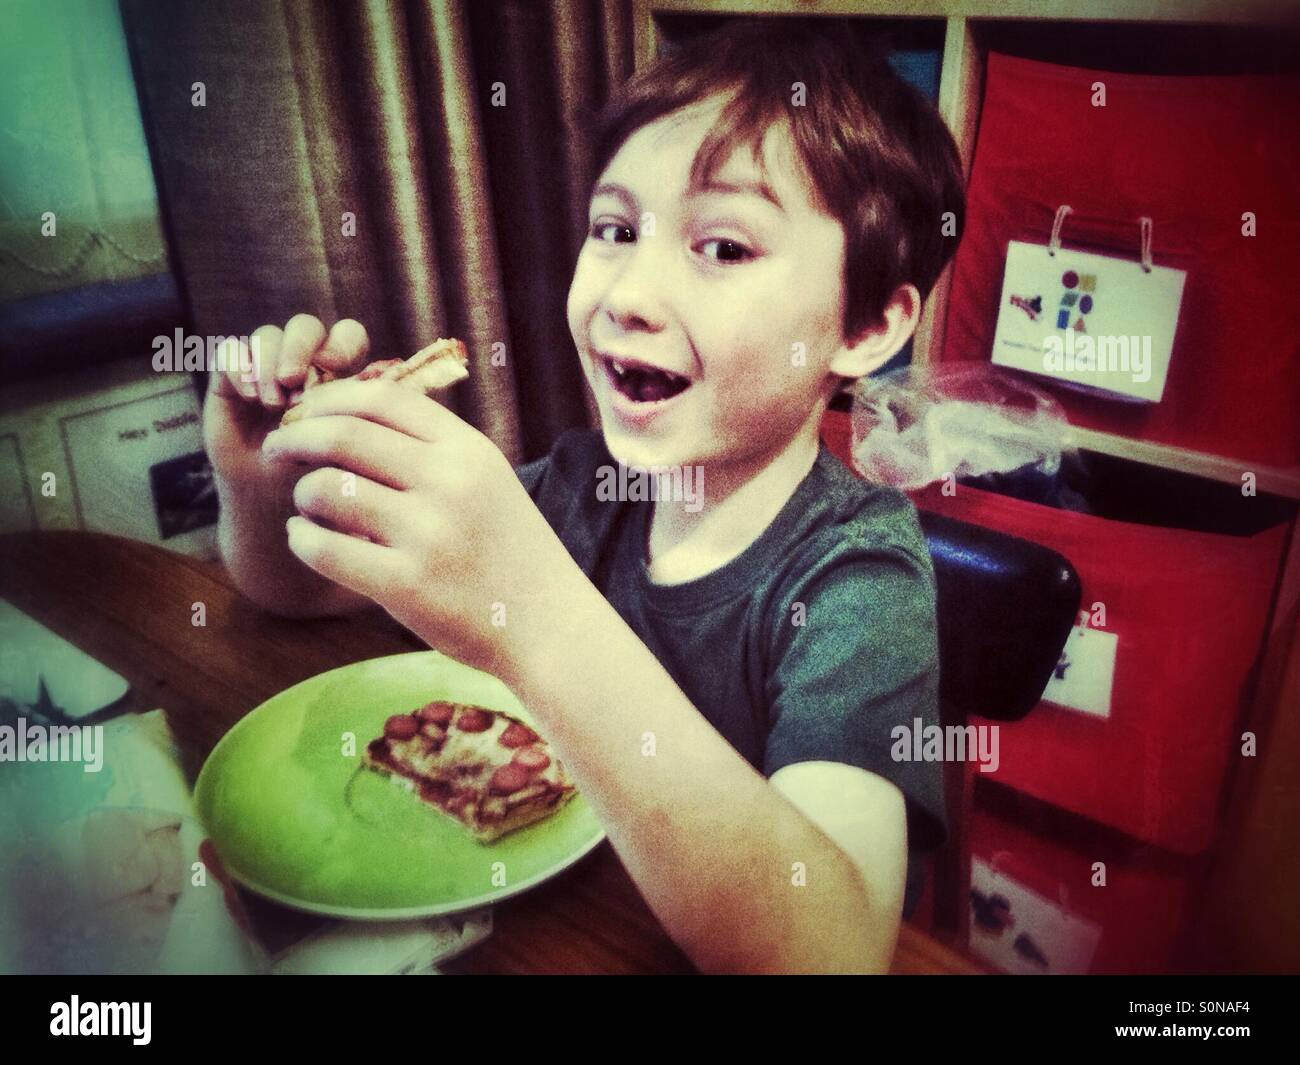 Brown Haired Boy Immagini   Brown Haired Boy Fotos Stock - Alamy 03d7fa5d15ae